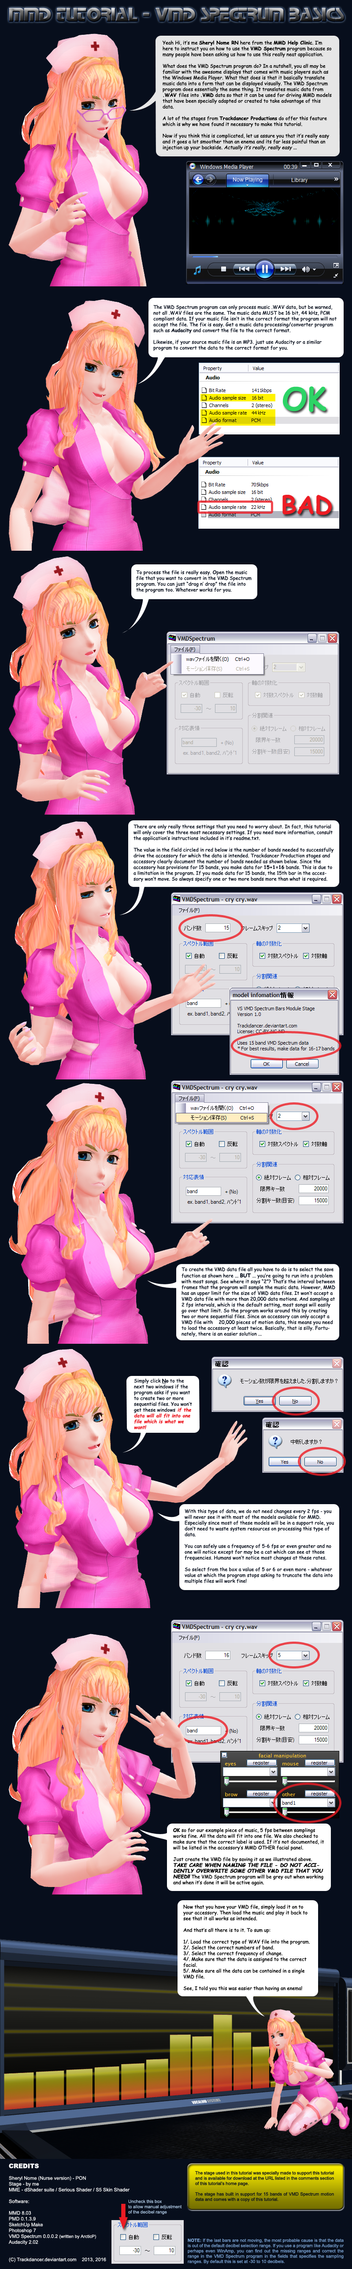 MMD Tutorial - VMD Spectrum Basics by Trackdancer